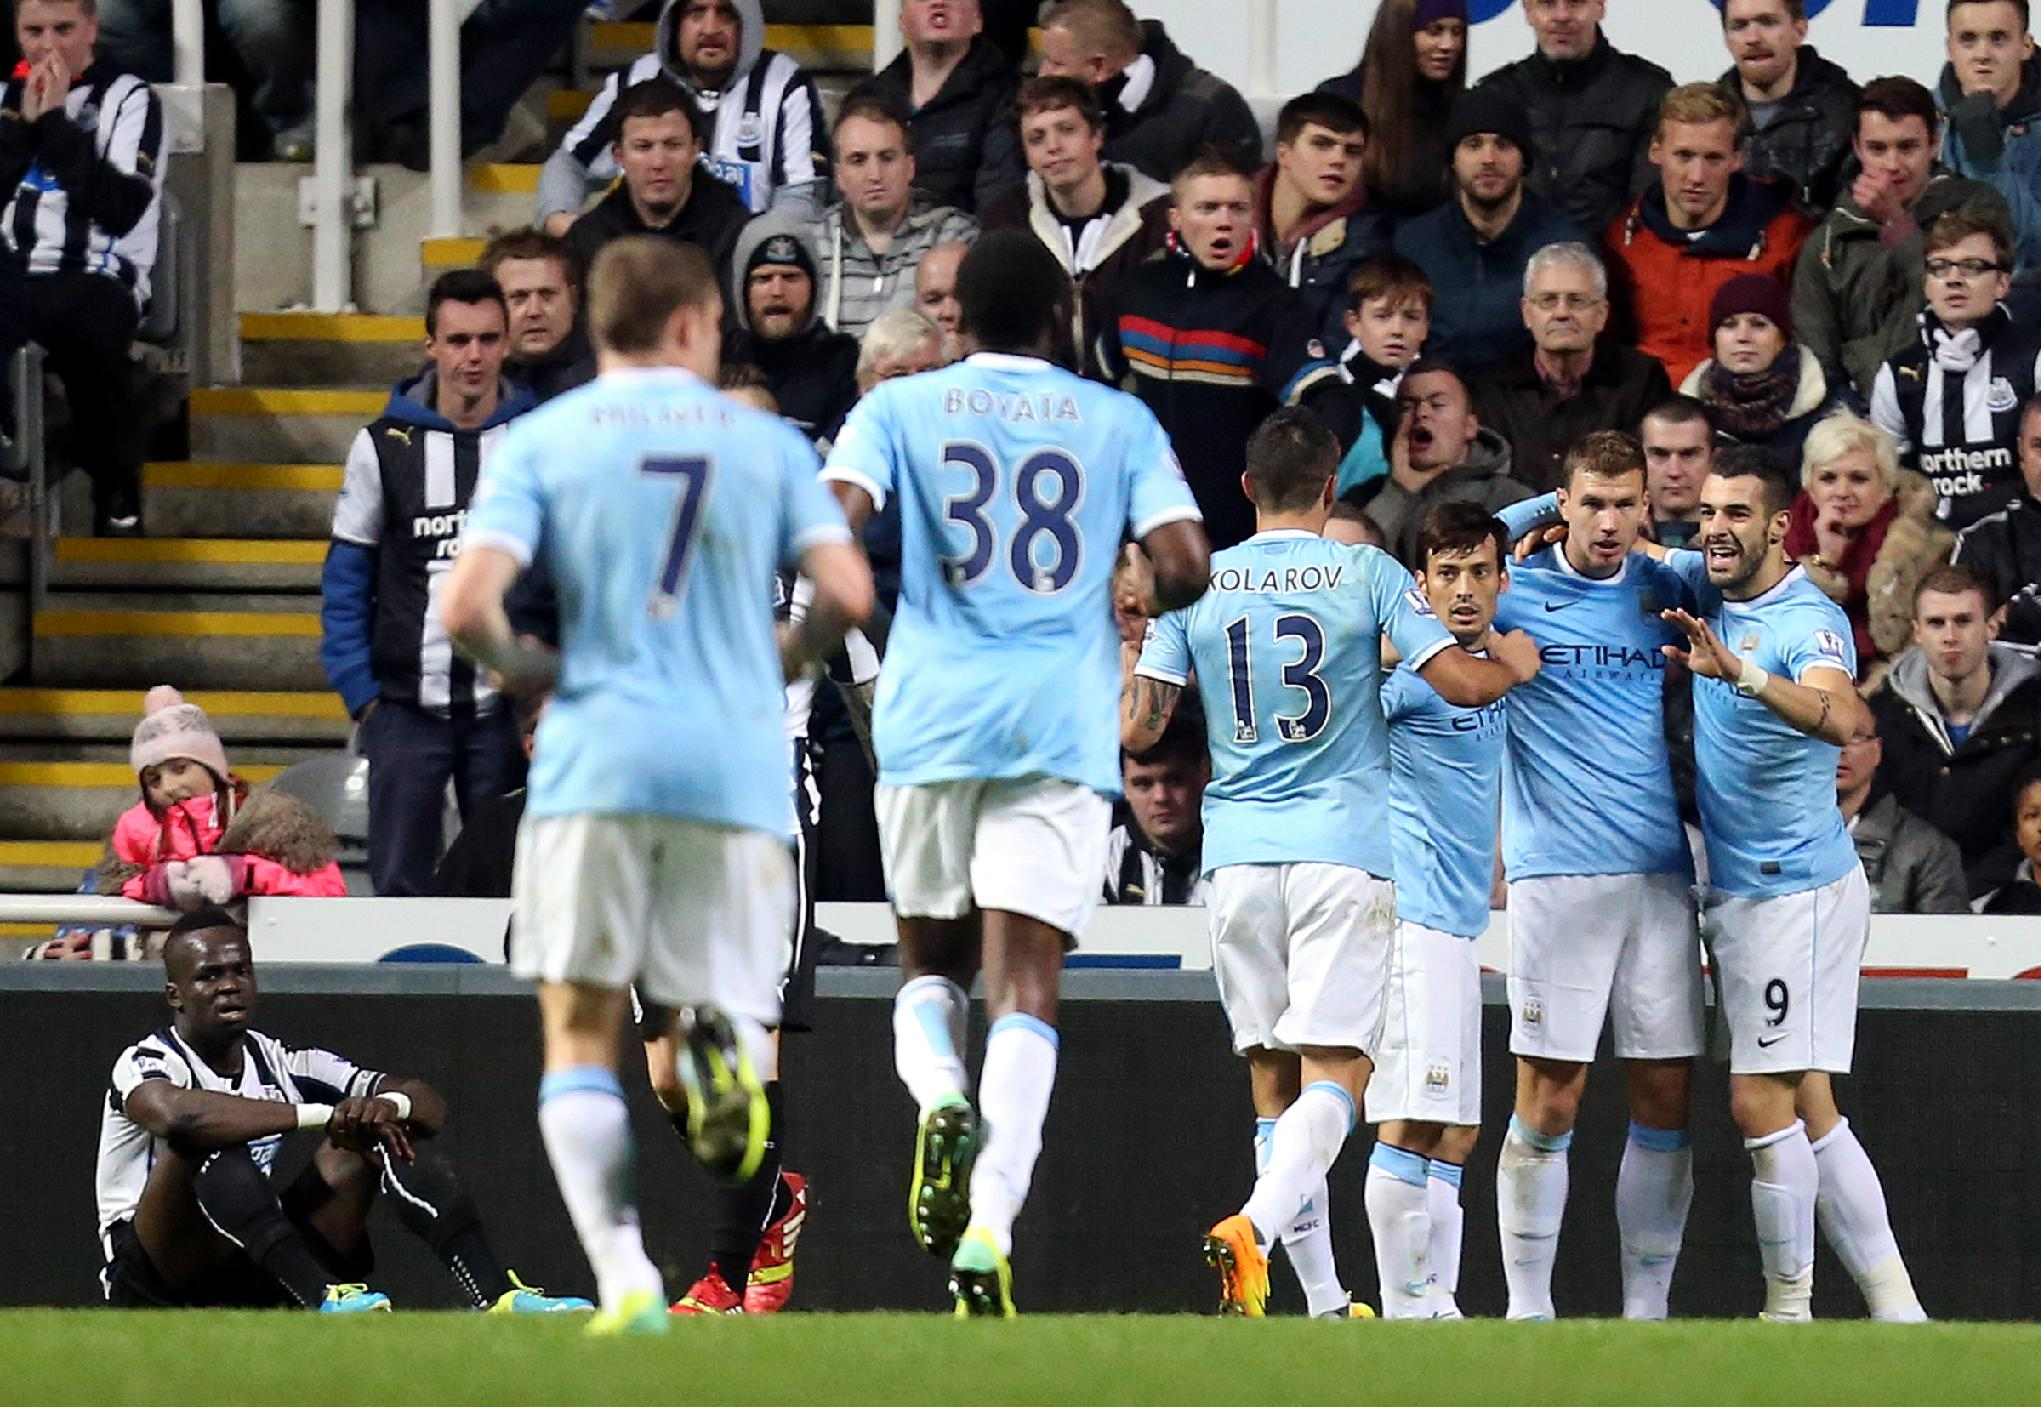 Manchester City's Alvaro Negredo, right, celebrates his goal with his teammates during their English League Cup soccer match against Newcastle United at St James' Park, Newcastle, England, Wednesday, Oct. 30, 2013